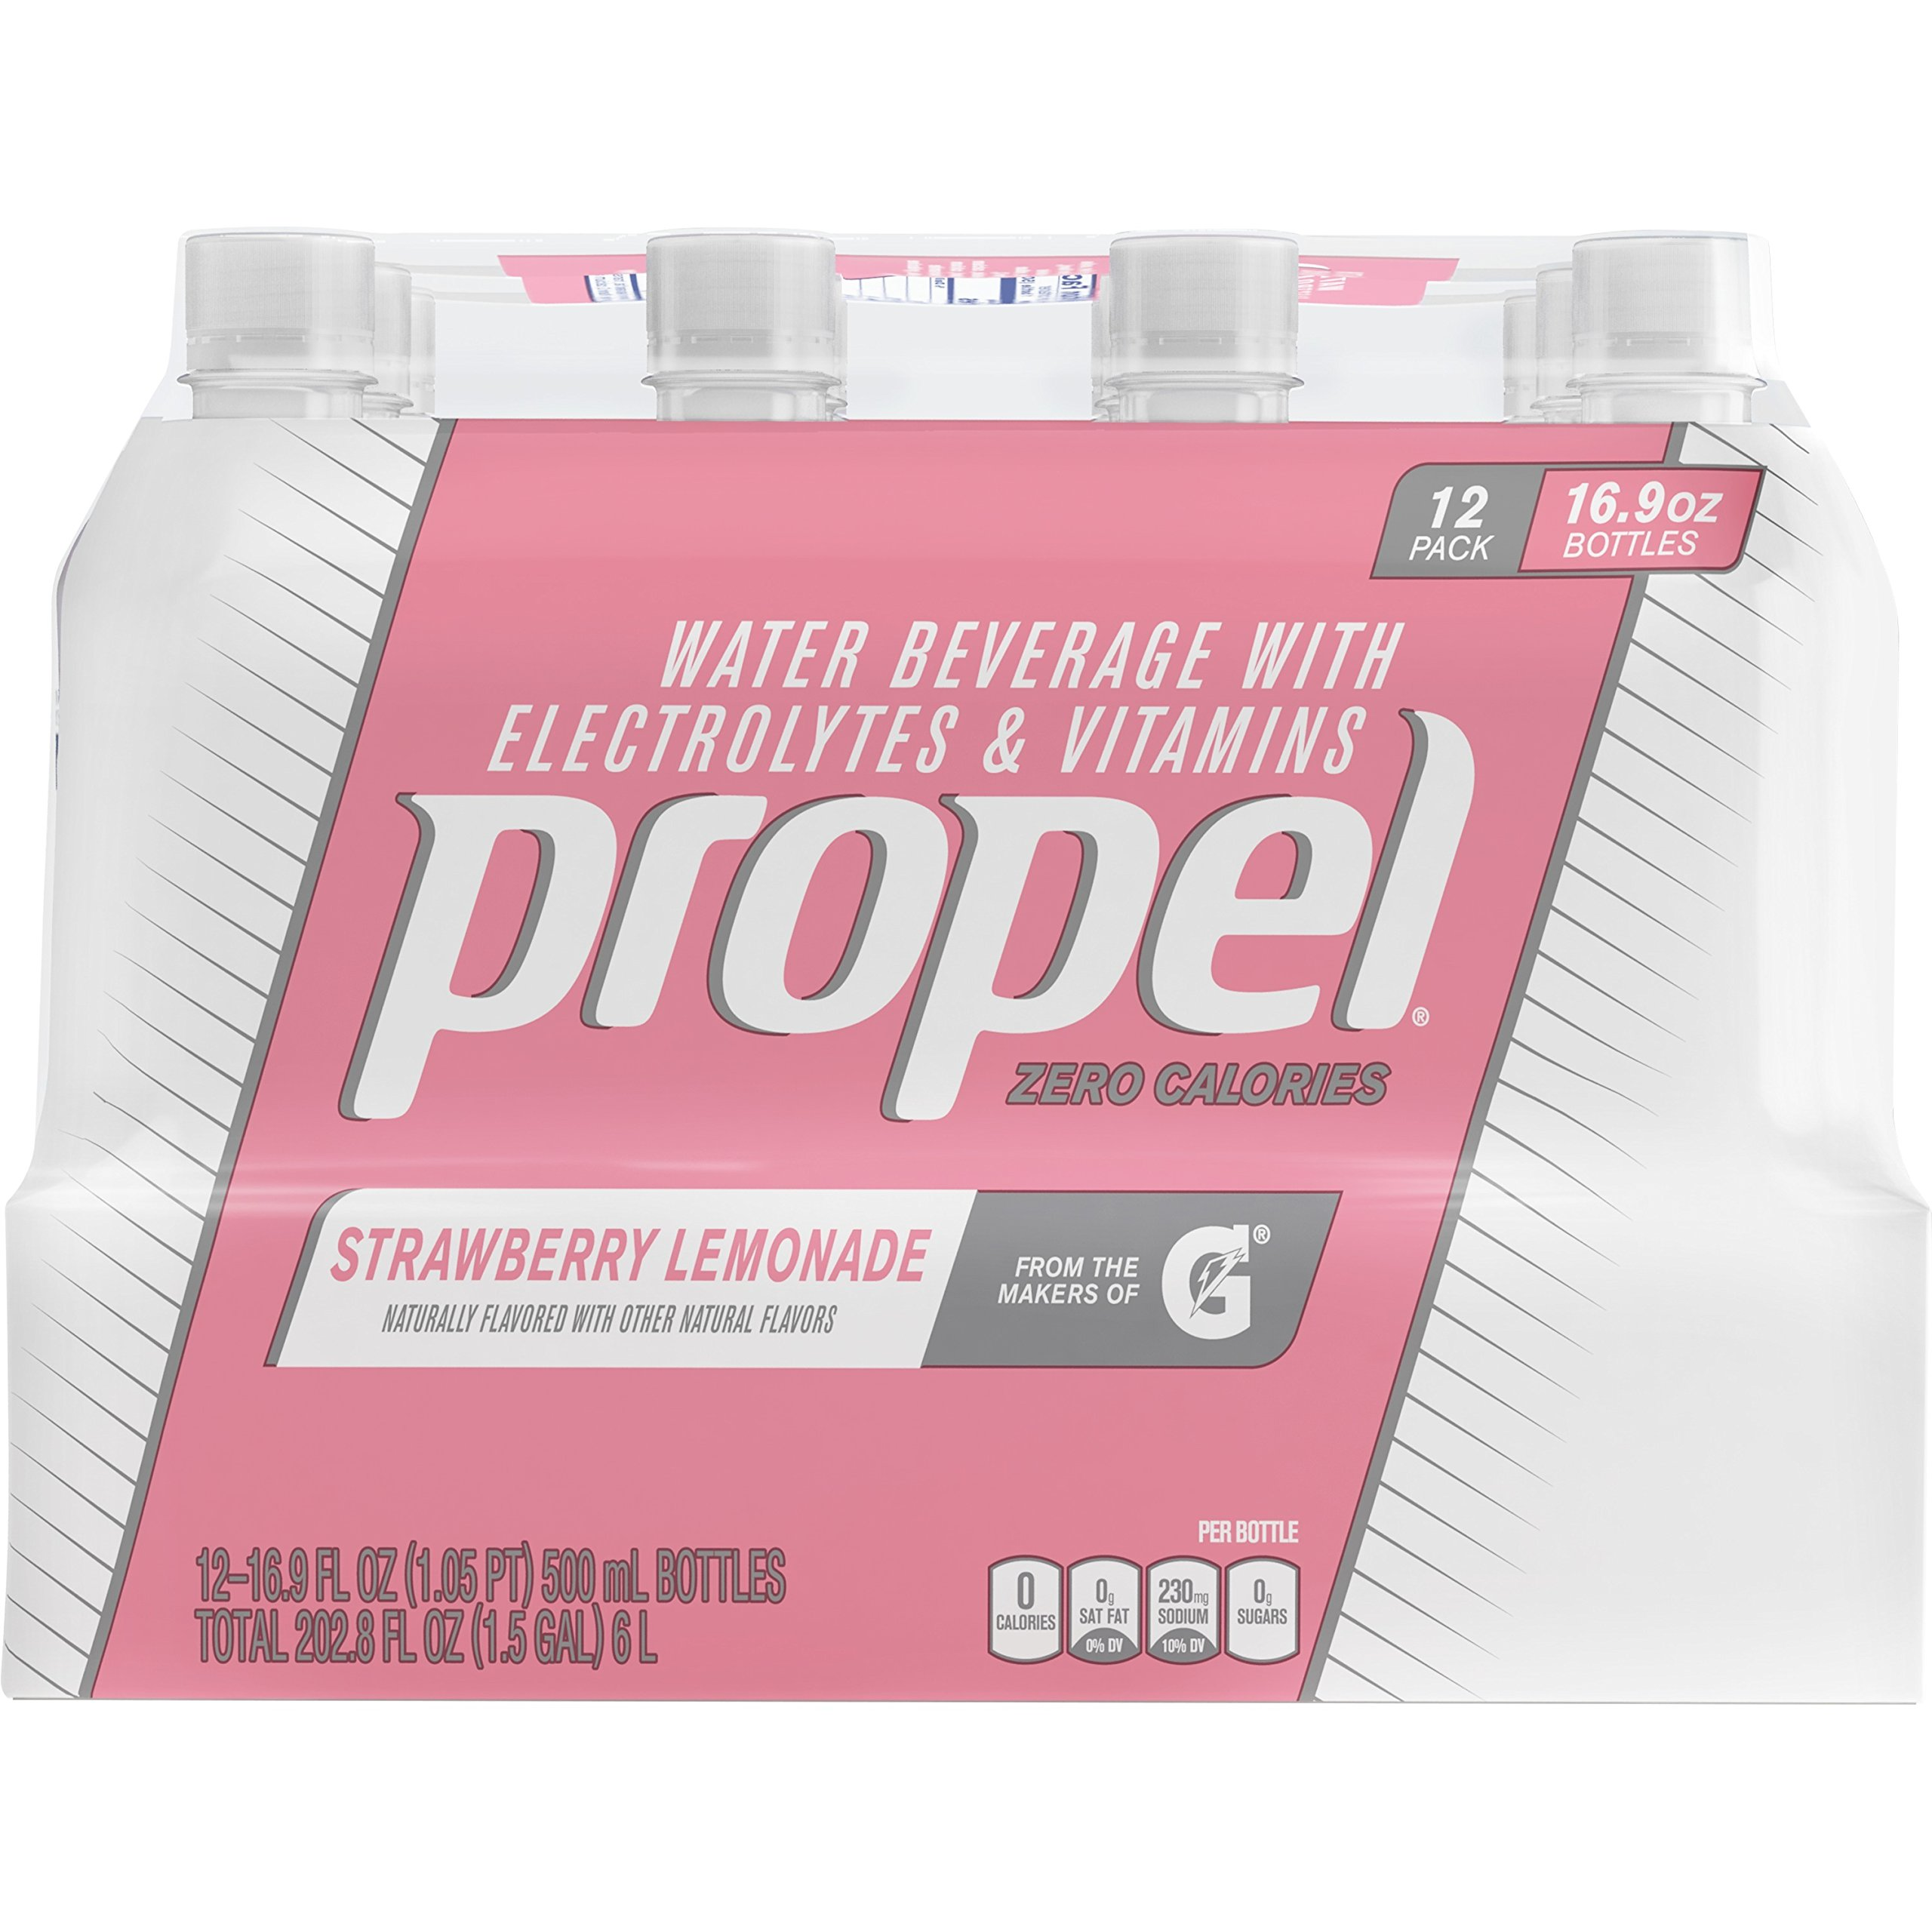 Propel, Strawberry Lemonade, Zero Calorie Sports Drinking Water with Electrolytes and Vitamins C&E, 16.9 Ounce Bottles (Pack of 12)